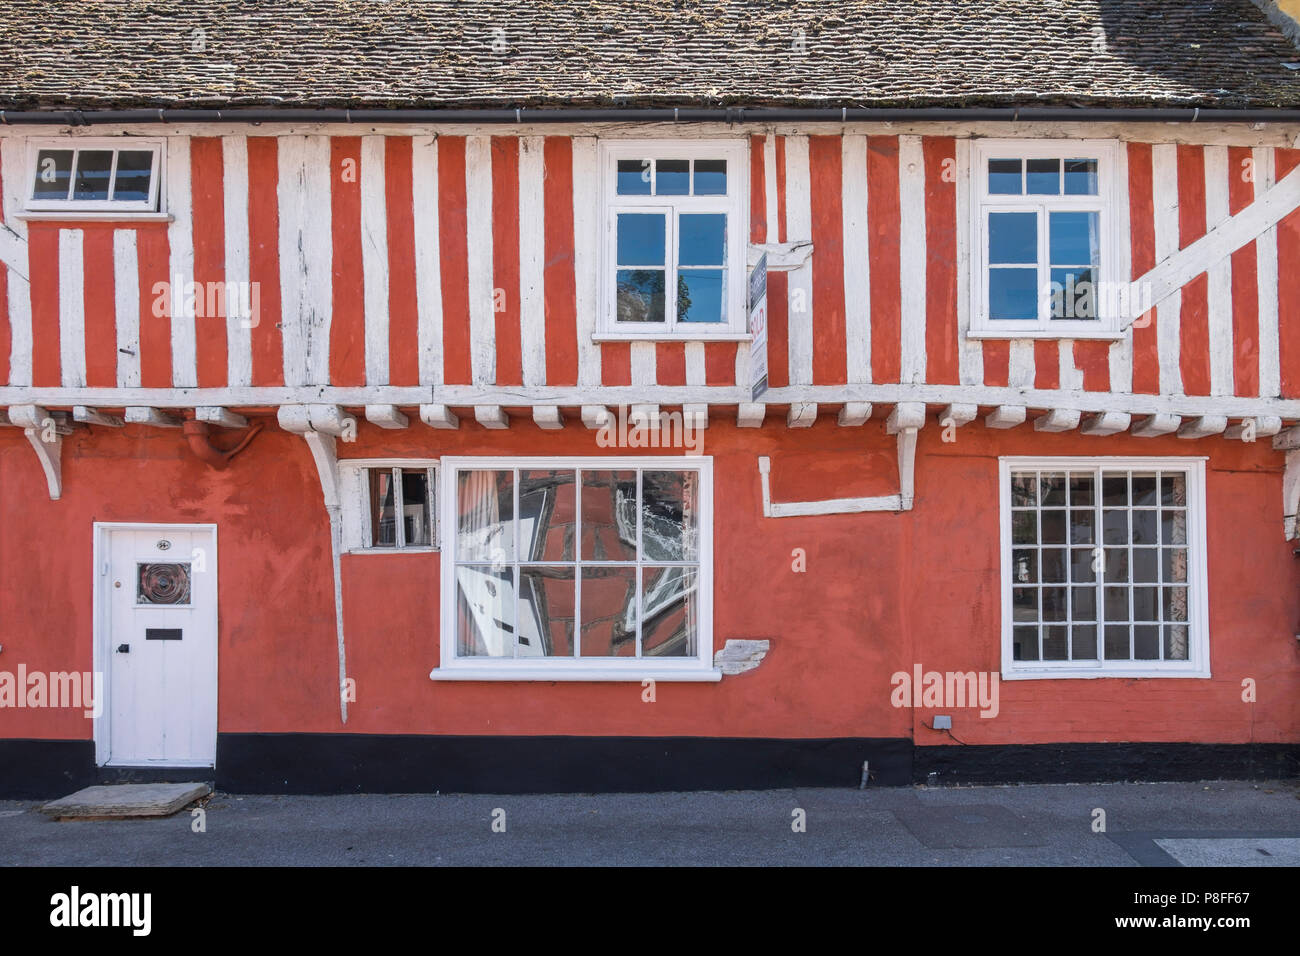 Timber framed building in Lavenham a town noted for its 15th-century church and half-timbered medieval cottages. - Stock Image